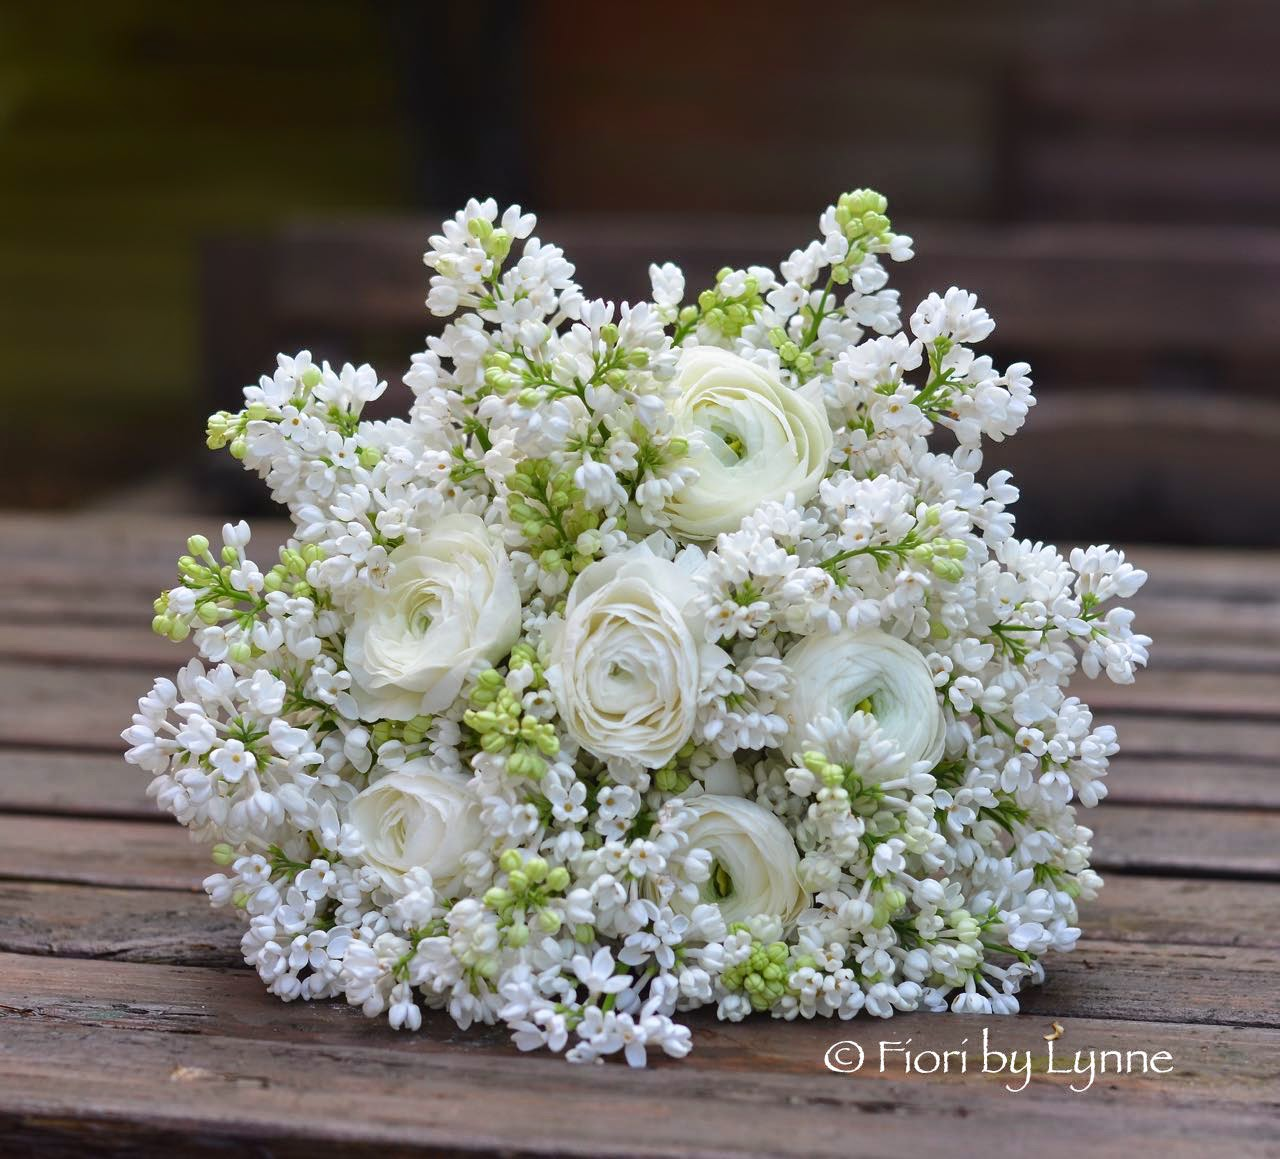 Designer Wedding Flowers: Wedding Flowers Blog: Kortney's Rustic But Elegant Spring